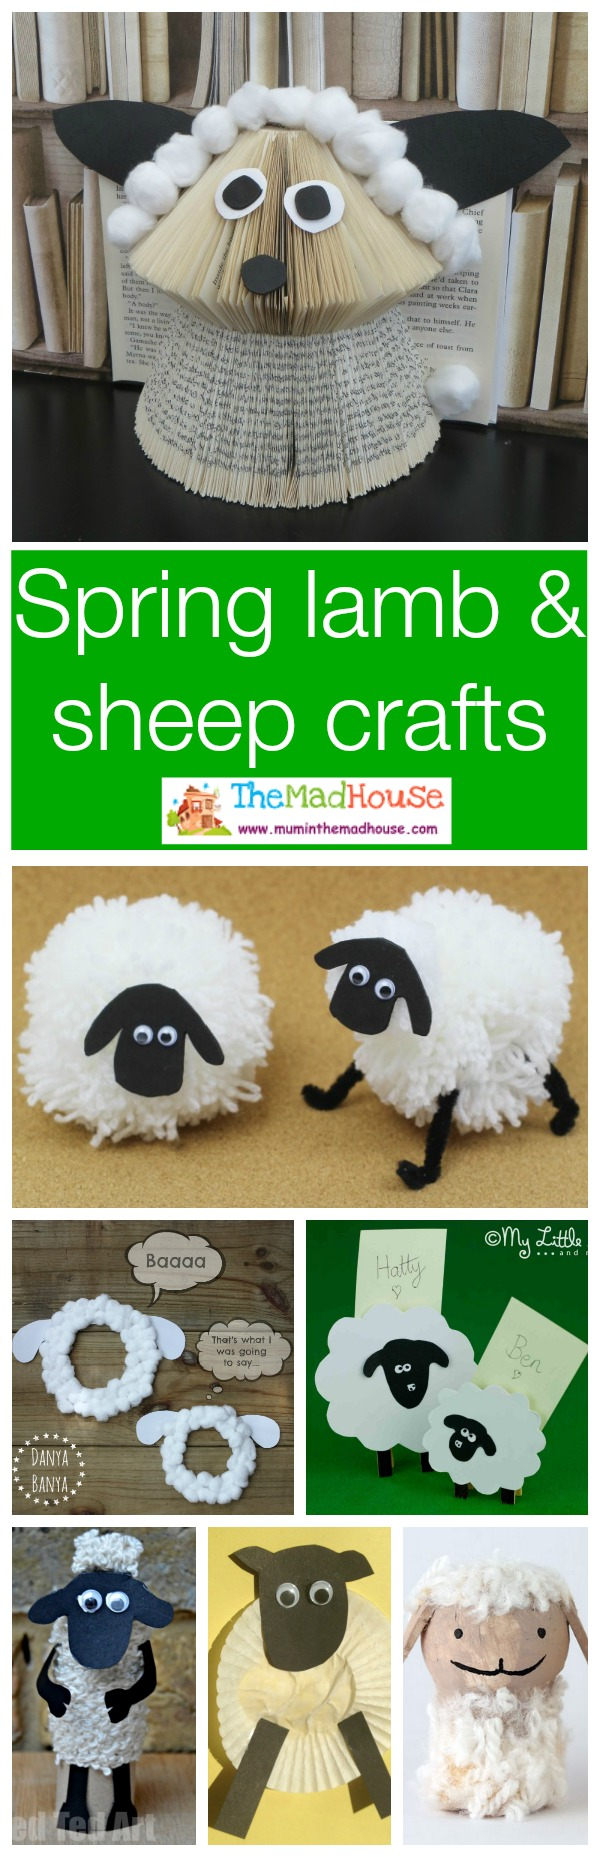 Sheep spring lamb crafts